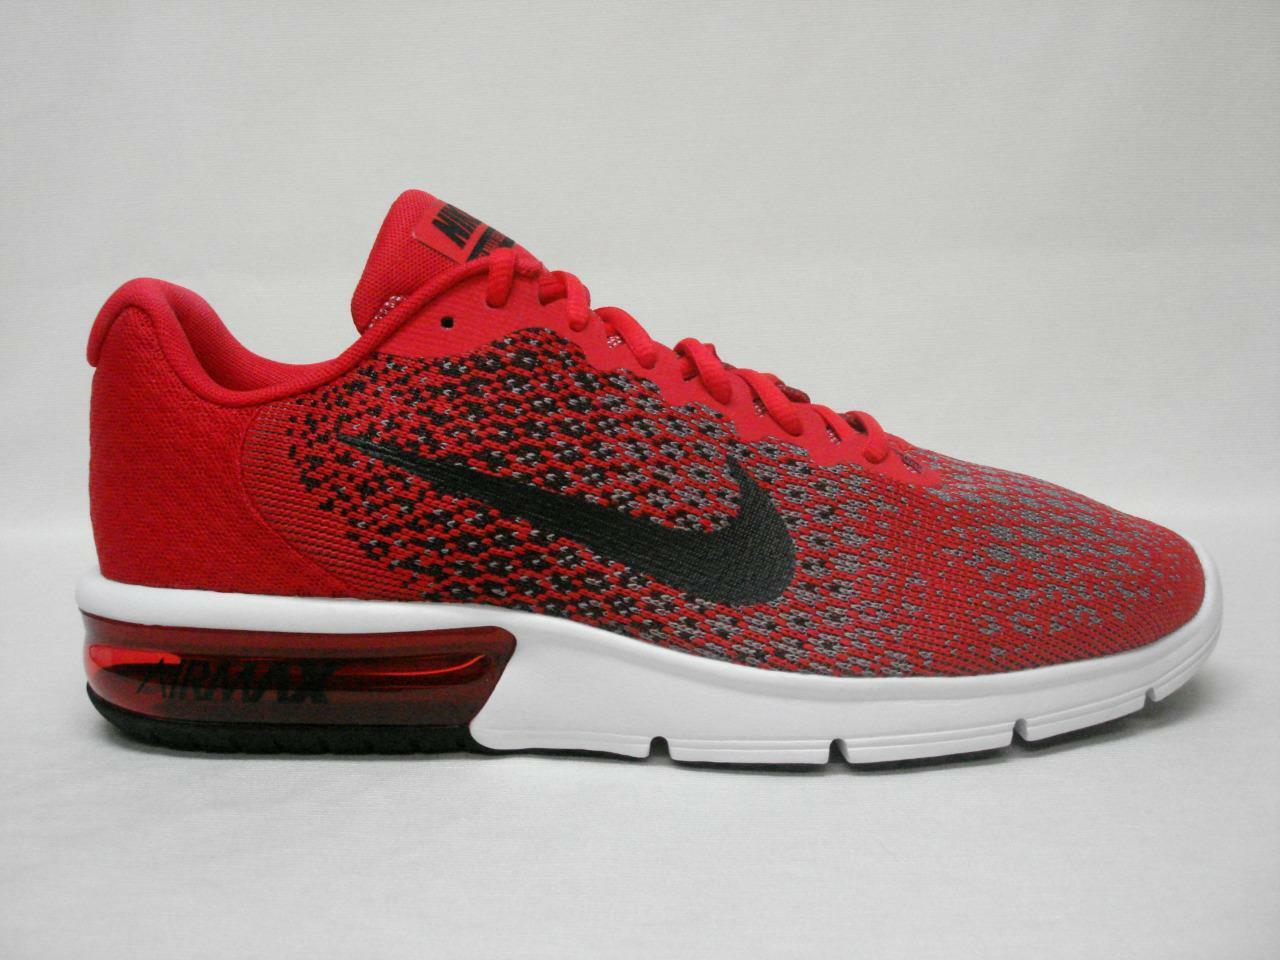 Cheap women's shoes women's shoes NIB NIKE AIR MAX SEQUENT 2 MEN'S SHOE'S 11 RED/BLACK~AWESOME LOOKING SHOE'S